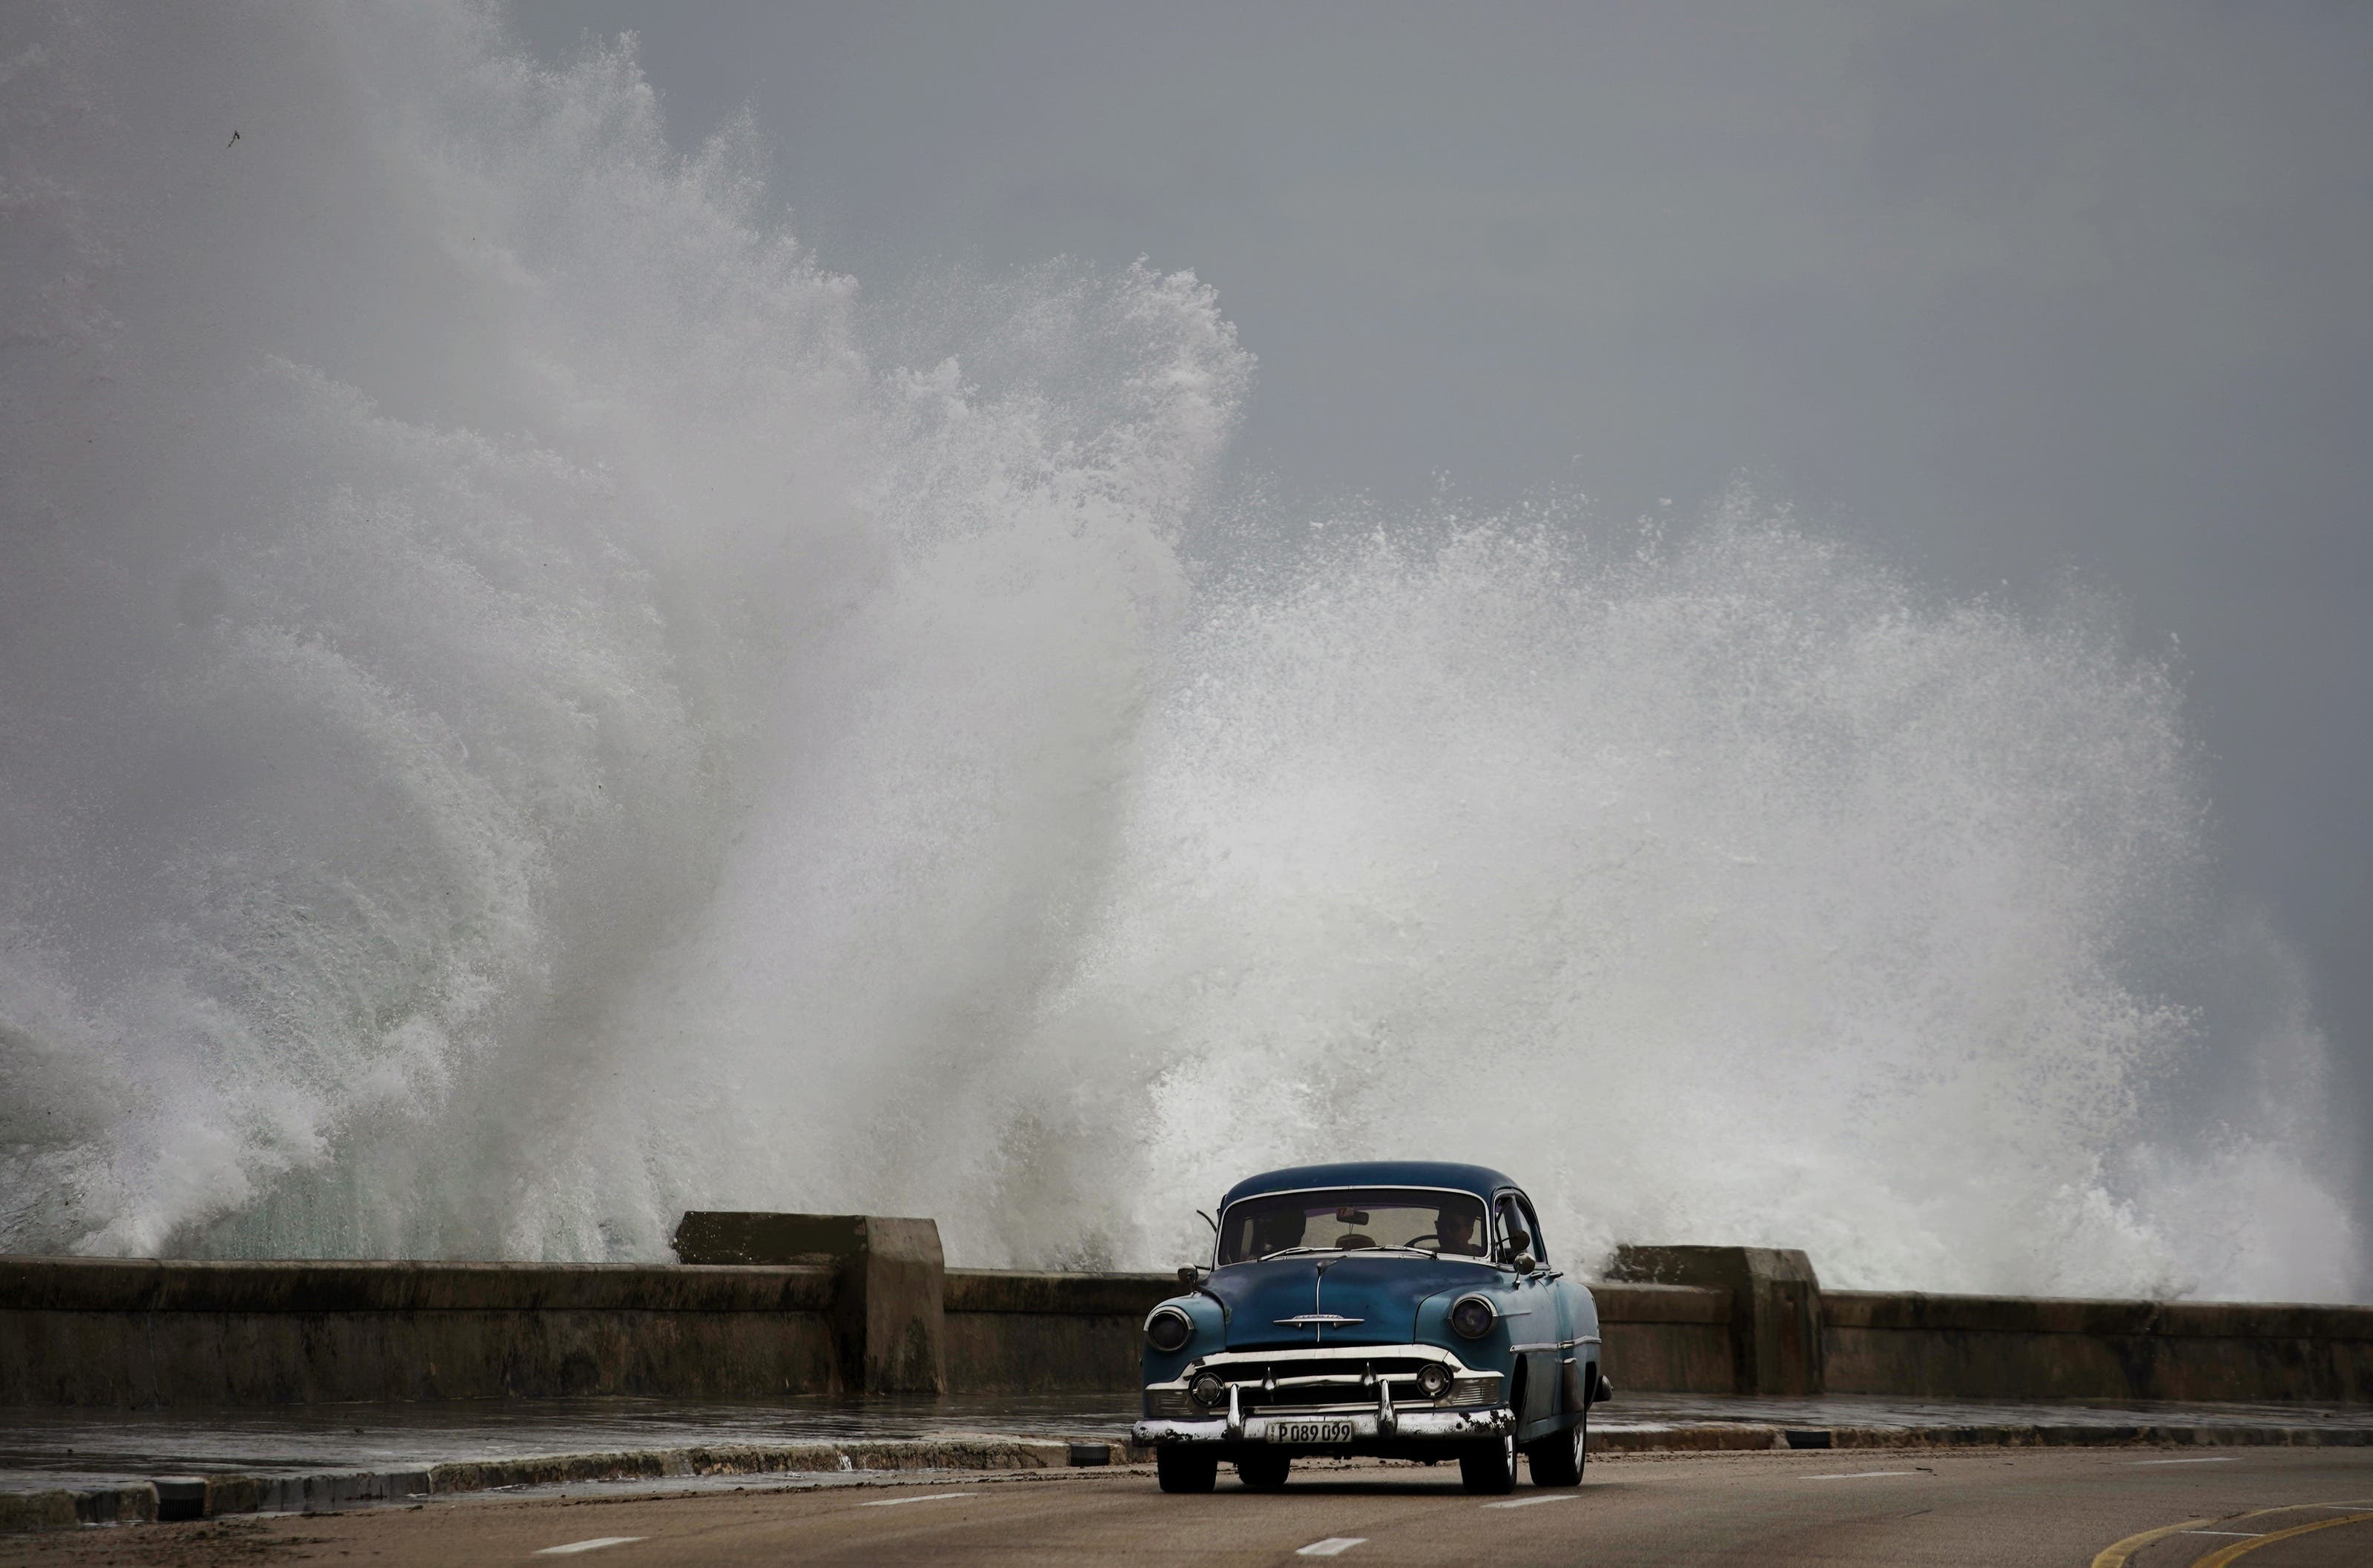 Dieses Foto wurde am 9. Oktober 2018 in Kubas Hauptstadt Havanna aufgenommen. Meterhohe Wellen erreichten die Insel. Waves crash against the Malecon, triggered by the outer bands of Hurricane Michael, as man drives past in a classic American car in Havana, Cuba, Tuesday, Oct. 9, 2018. A fast and furious Hurricane Michael is churning toward the Florida Panhandle with 110 mph winds and a potential storm surge of 12 feet, giving tens of thousands of people precious little time to get out. (AP Photo/Ramon Espinosa